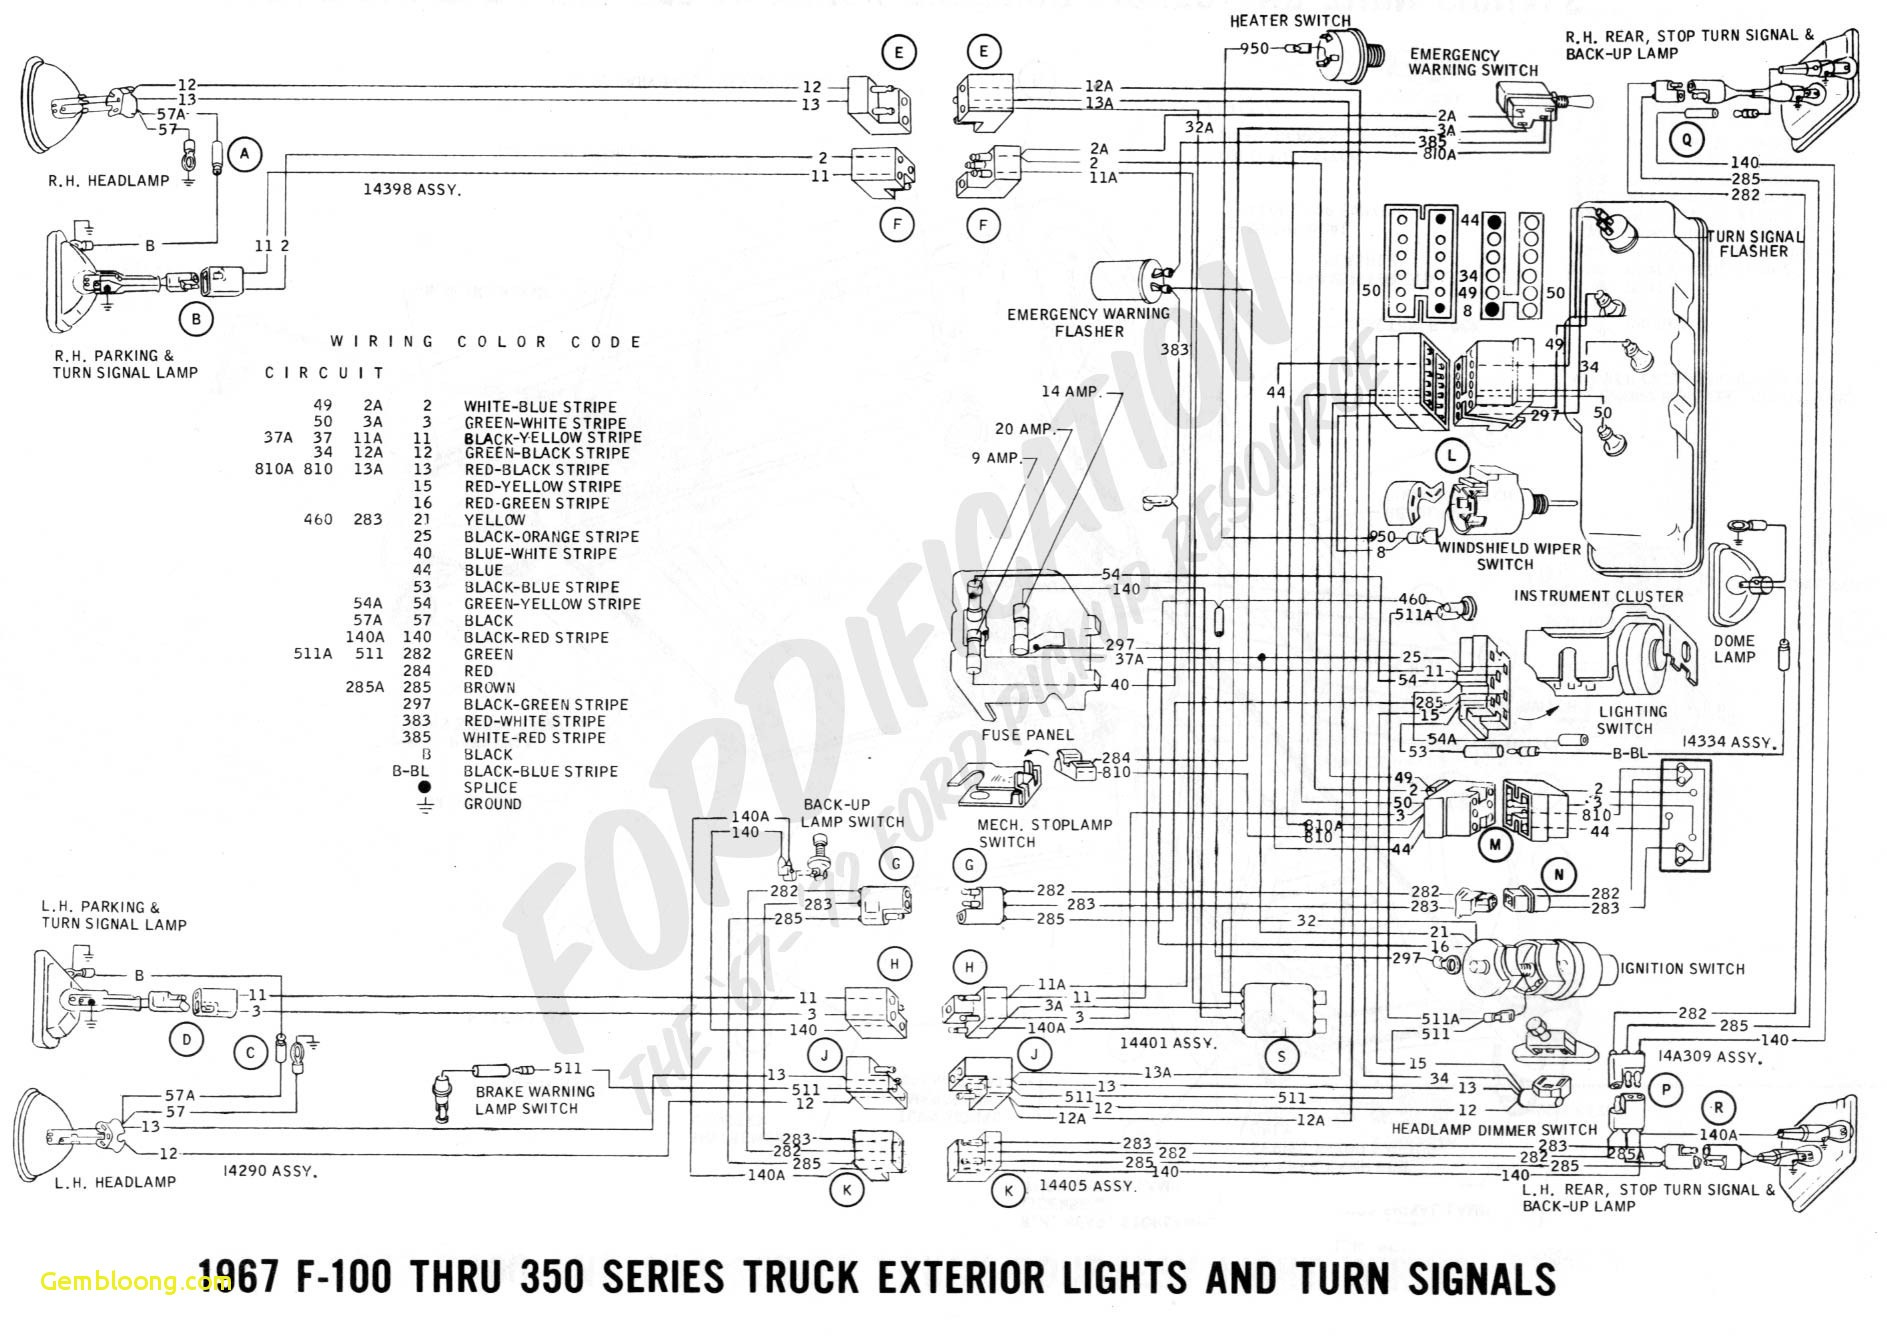 Engine Run Stand Wiring Diagram Download ford Trucks Wiring Diagrams ford F150 Wiring Diagrams Best Of Engine Run Stand Wiring Diagram